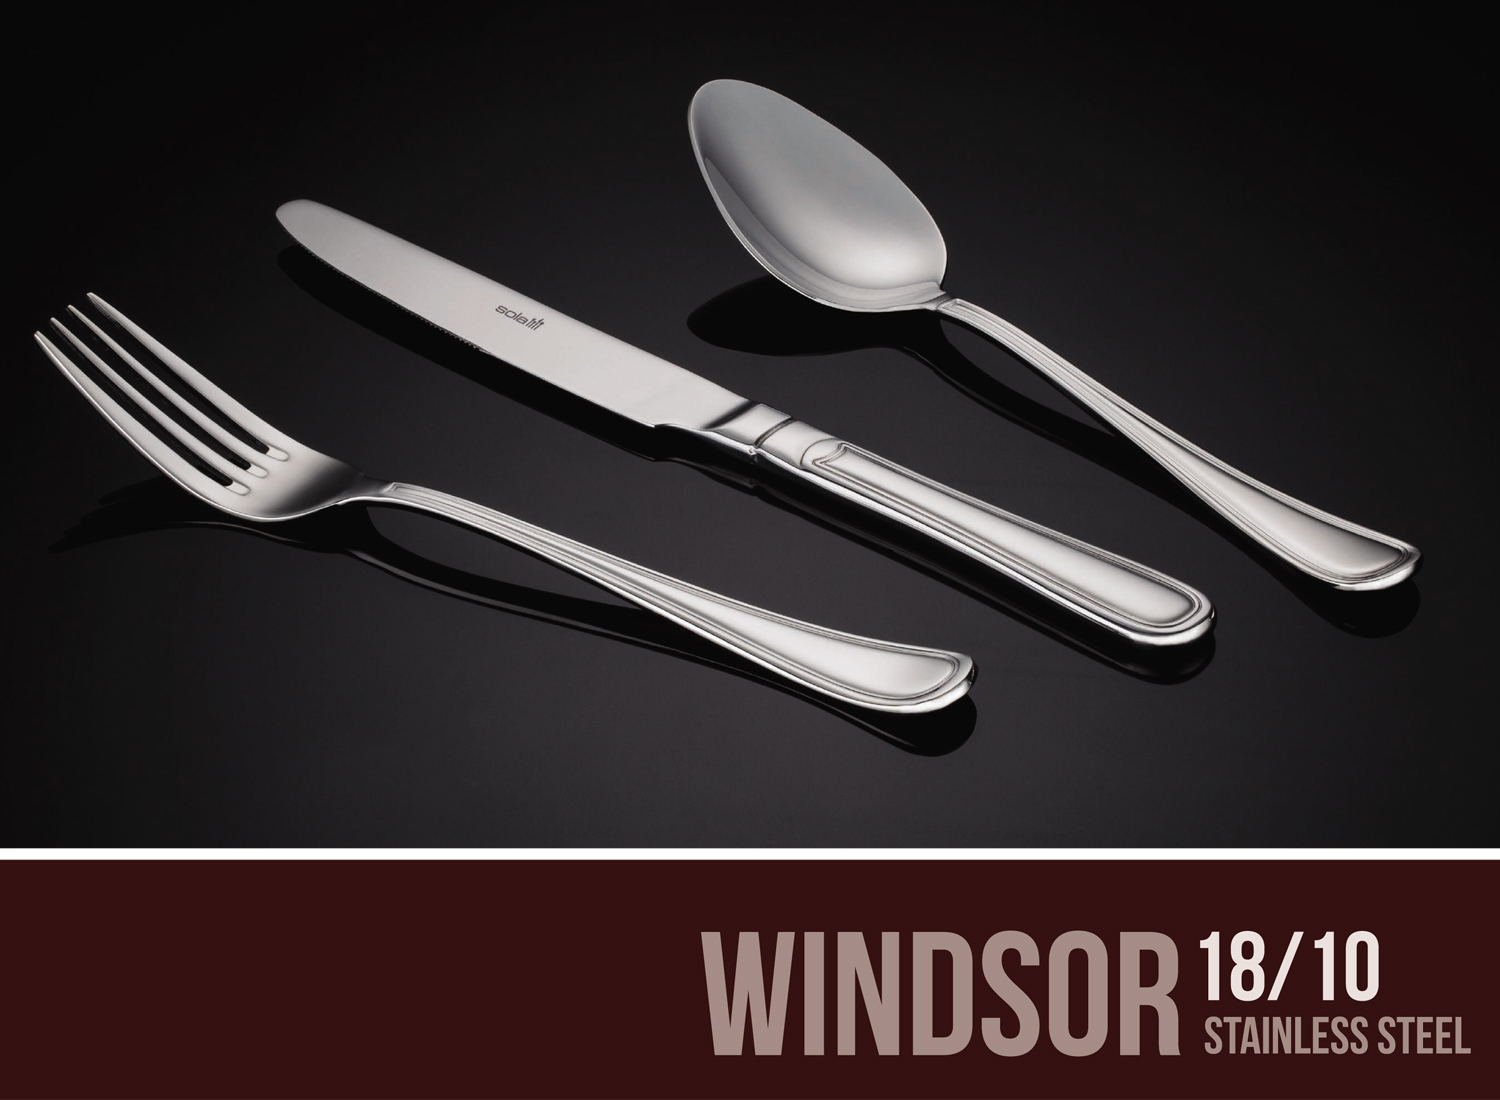 Windsor Stainless Steel